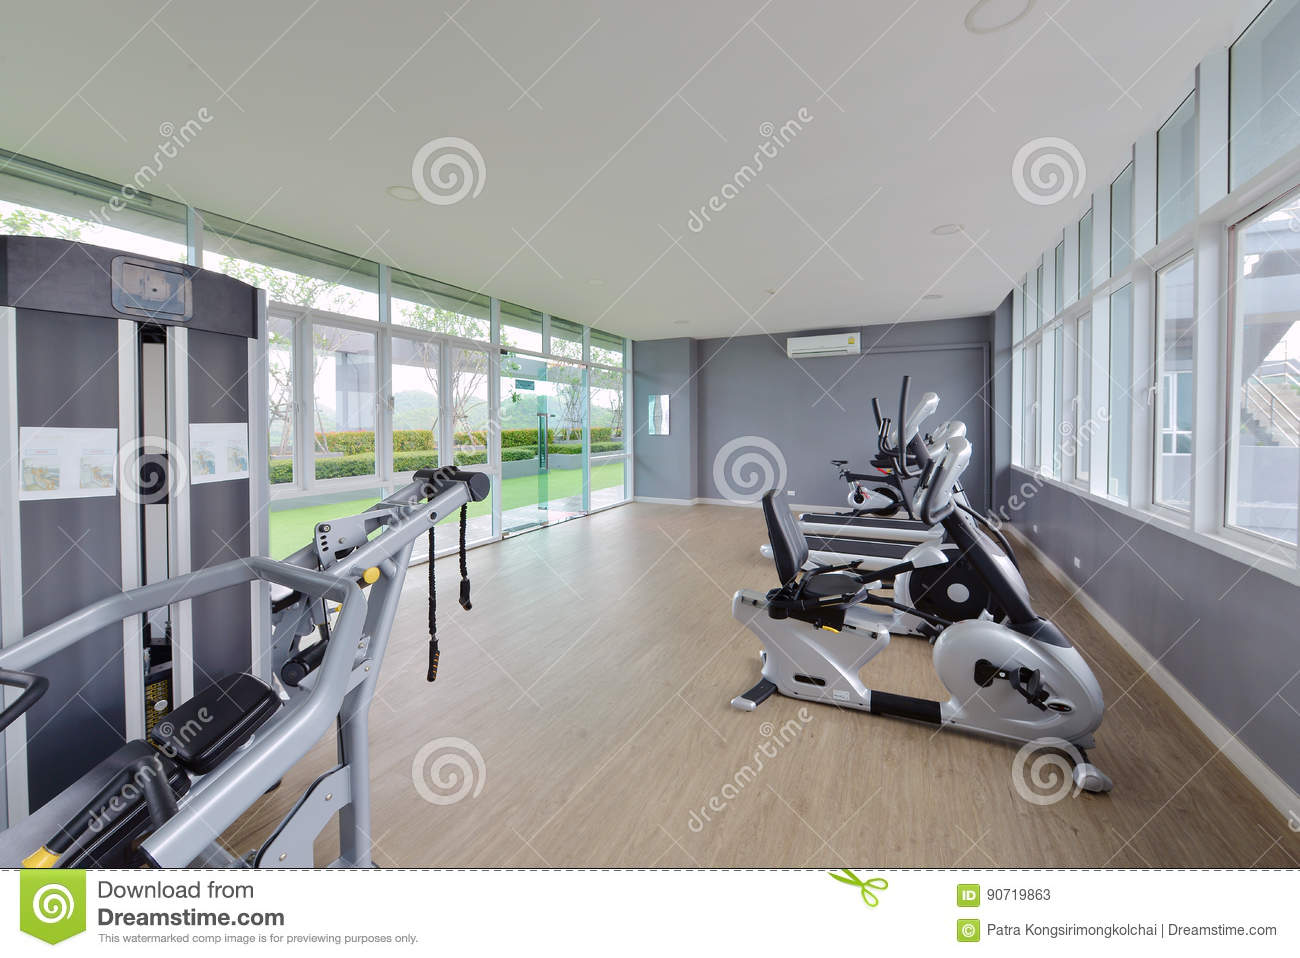 Modern fitness center interior design luxury gym stock image